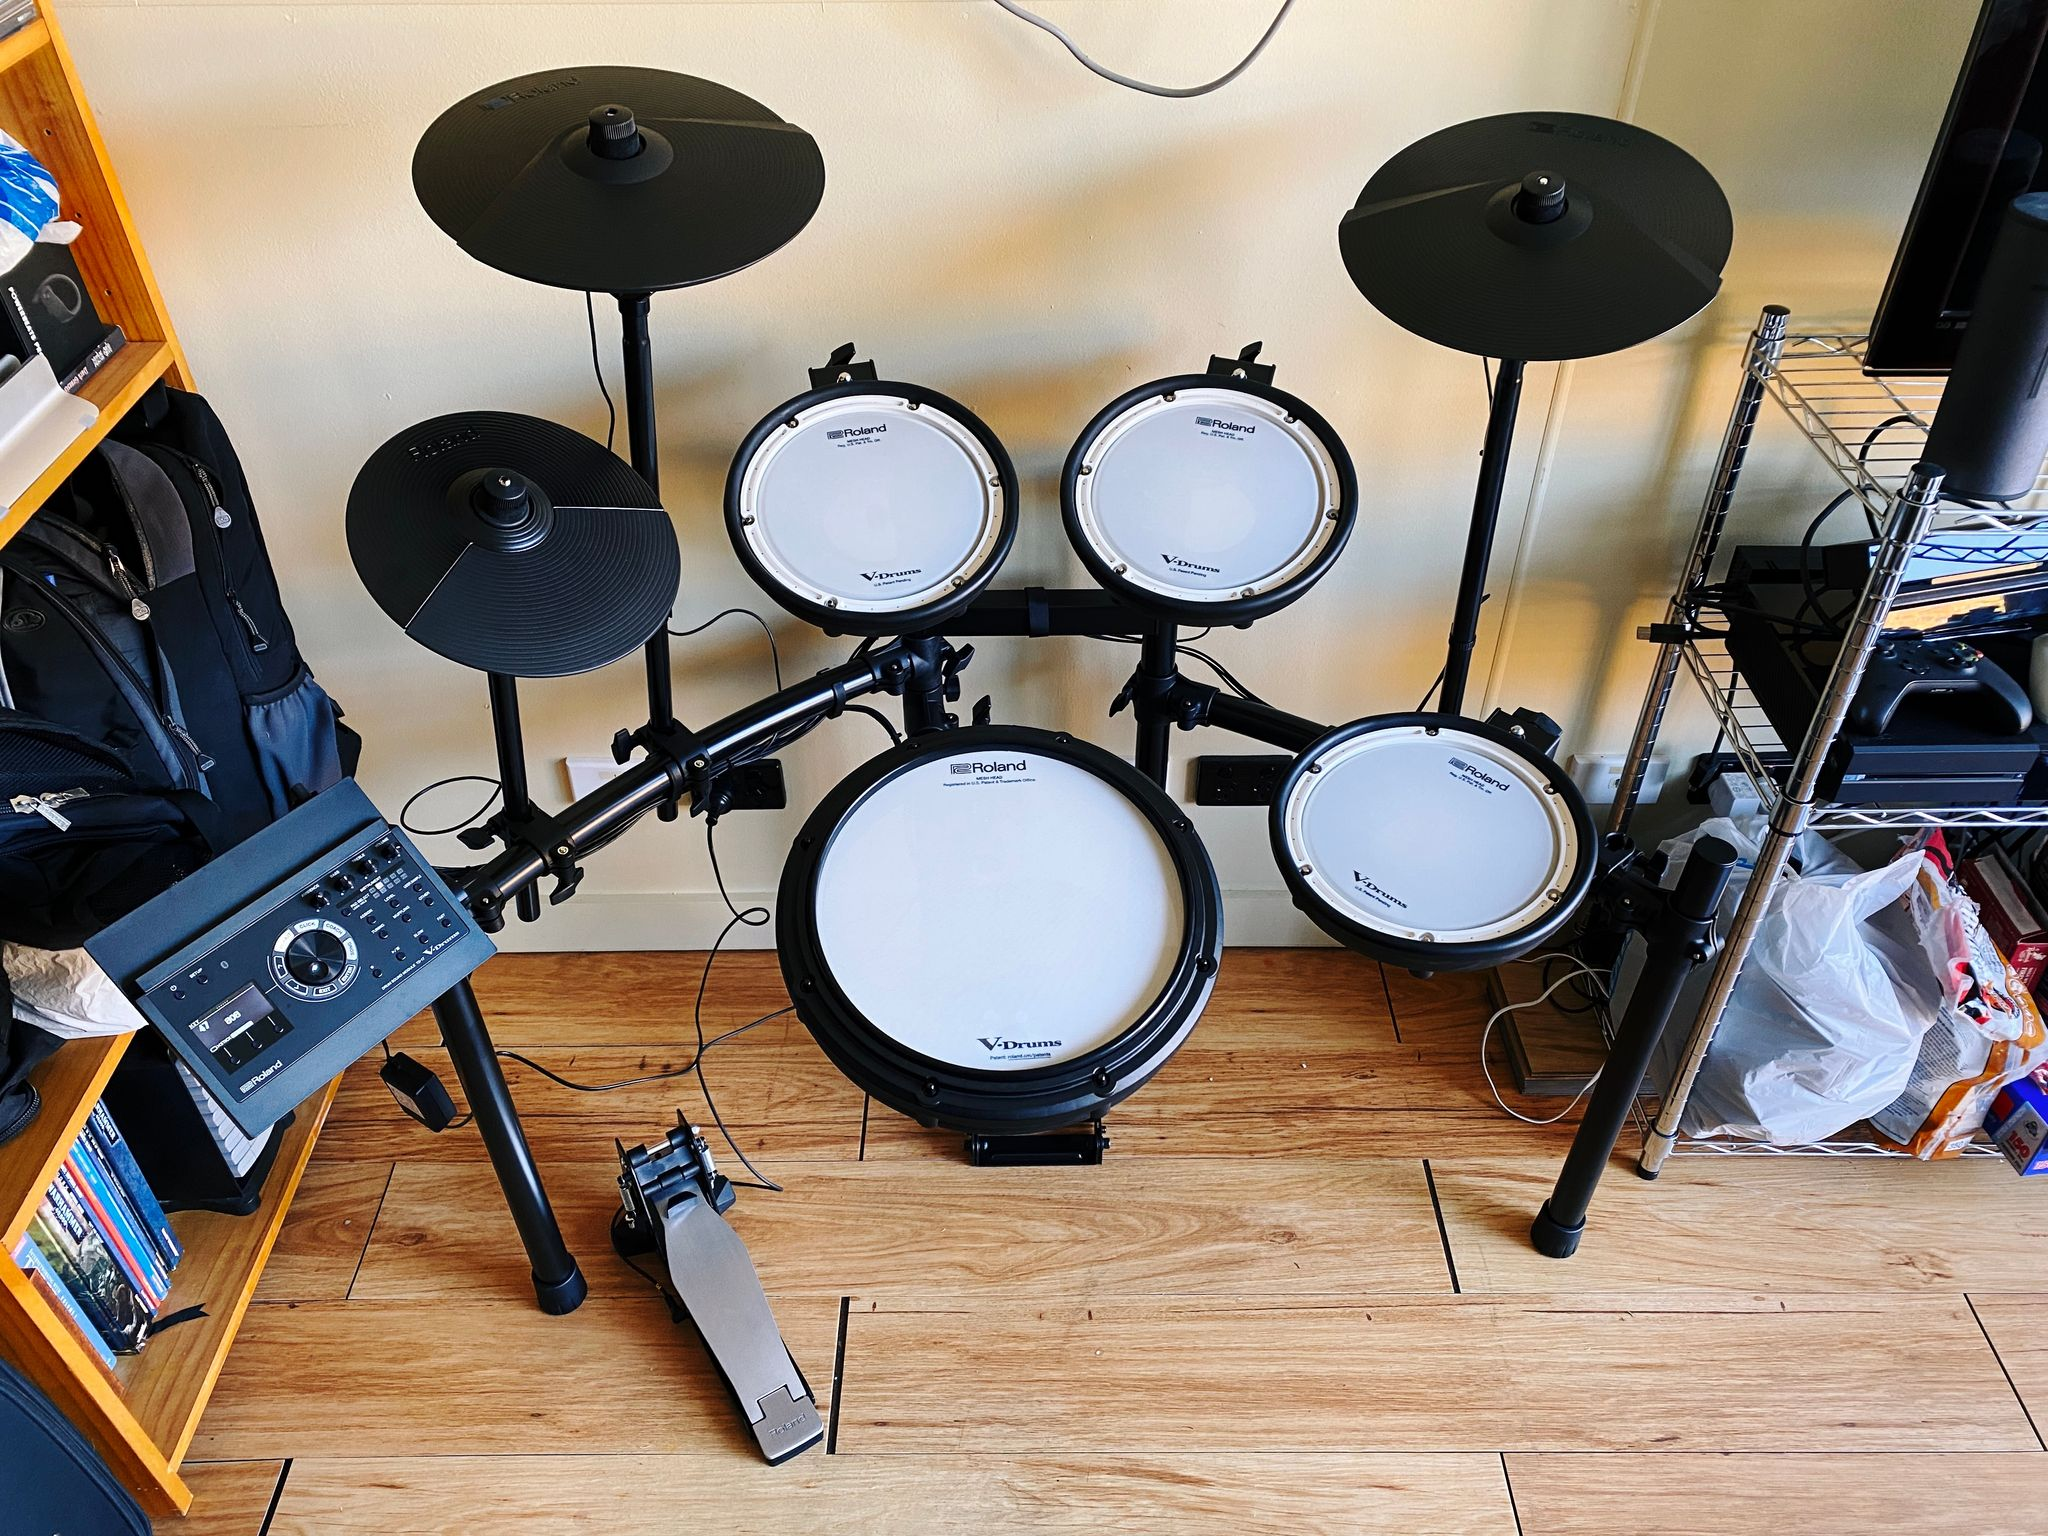 A photo of an assembled Roland electronic drum kit.